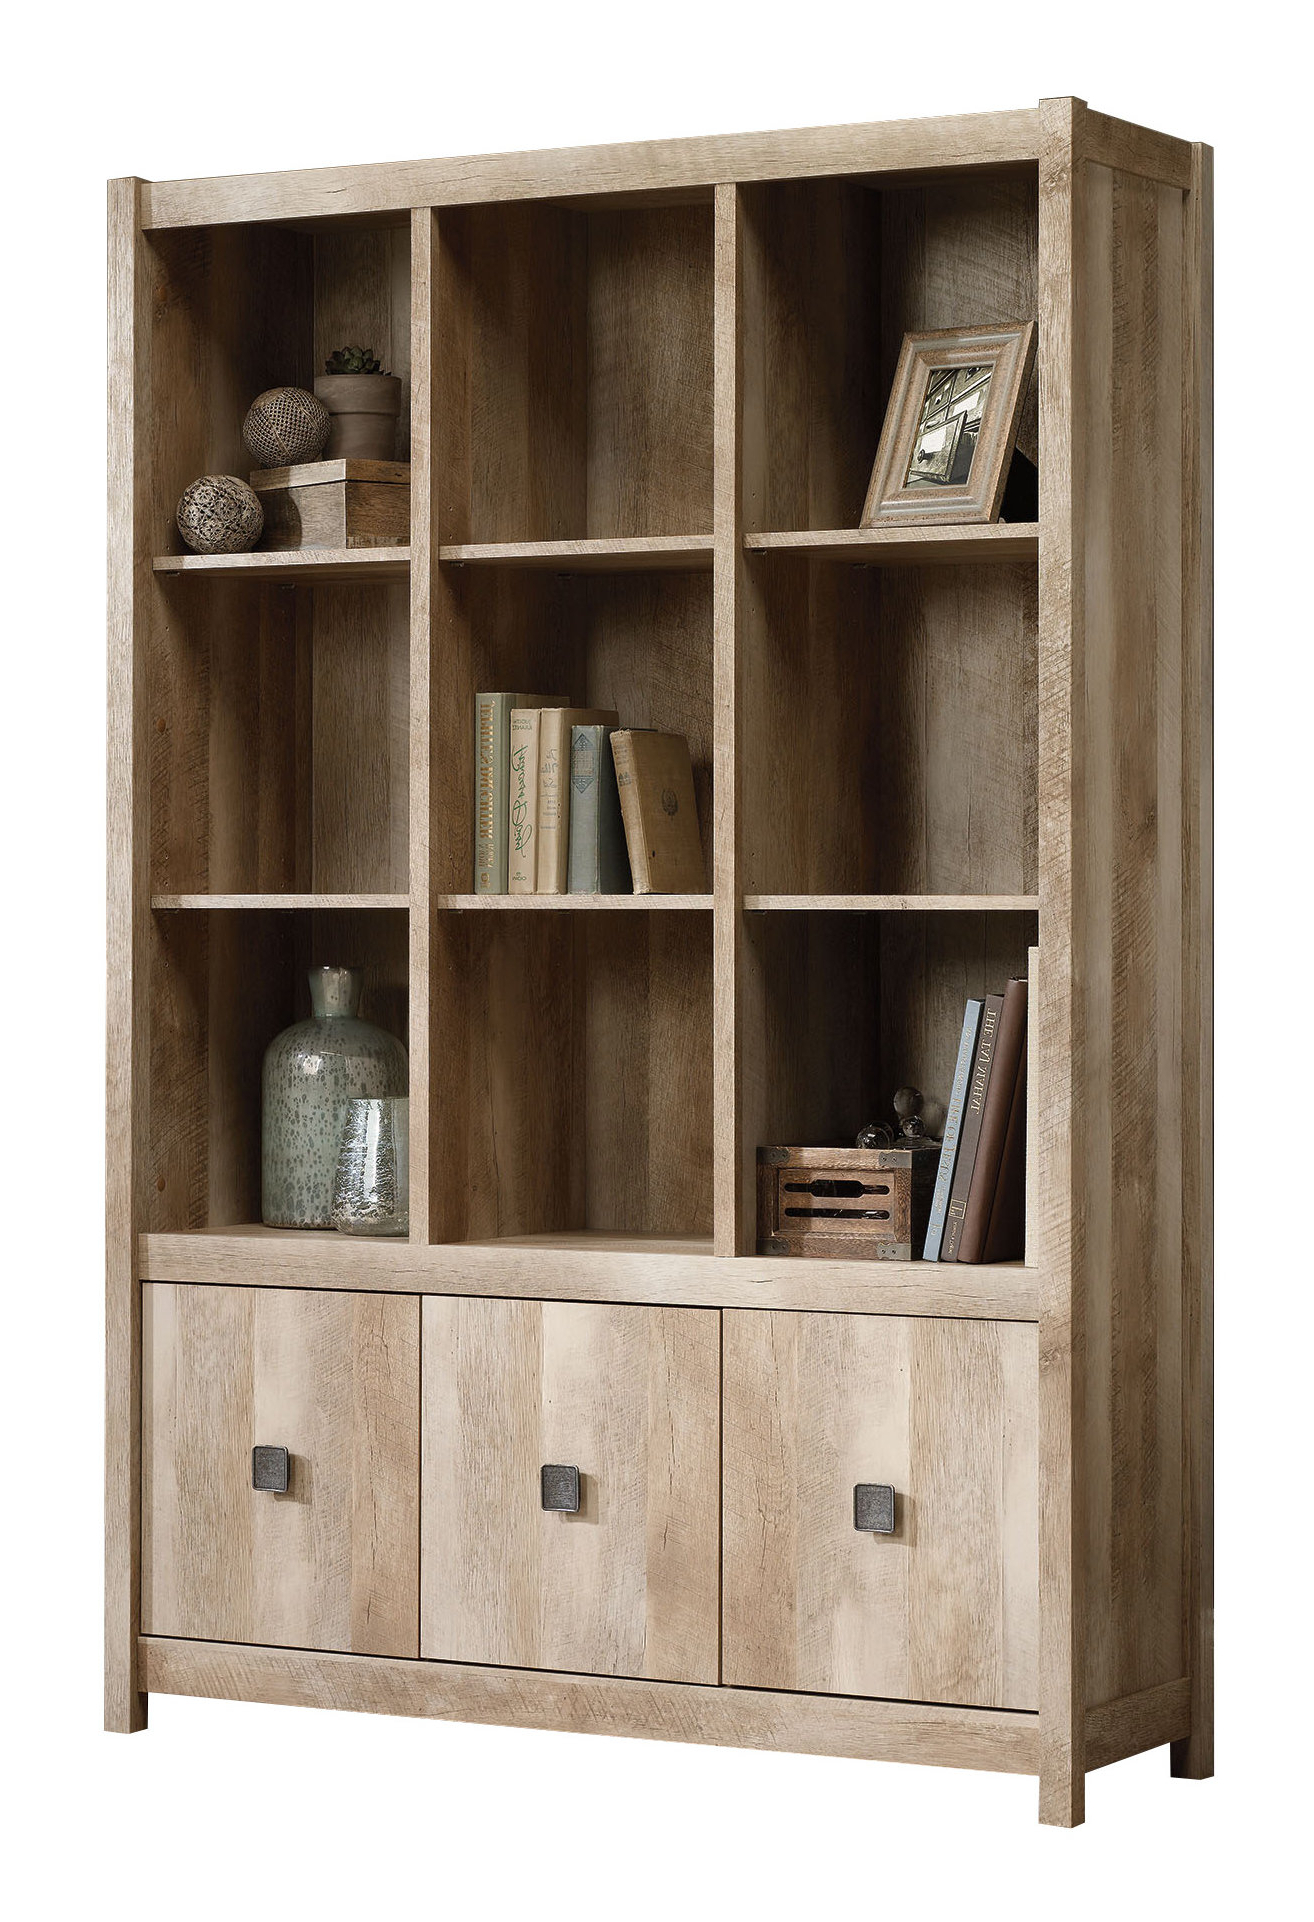 Strauss Cube Unit Bookcase Throughout Most Current Strauss Cube Unit Bookcases (Gallery 1 of 20)